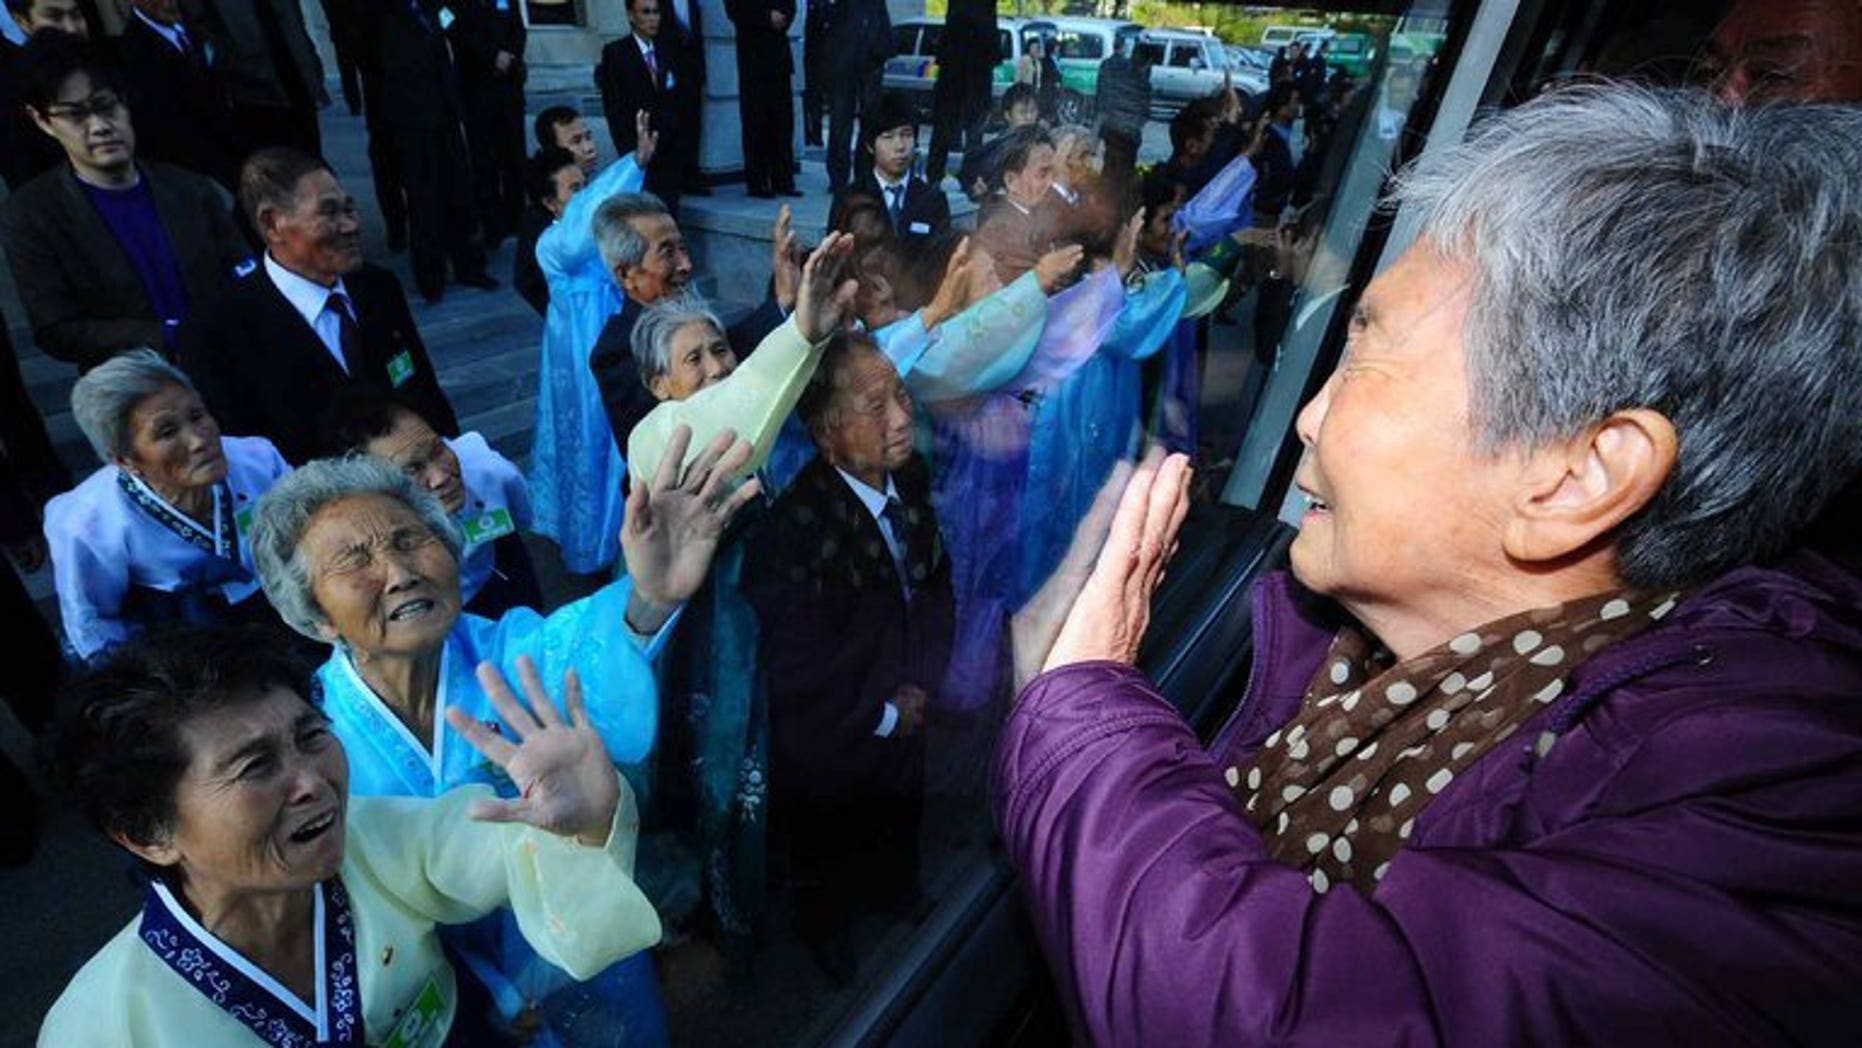 Separated relatives wave goodbye after a family reunion in North Korea on November 5, 2010.